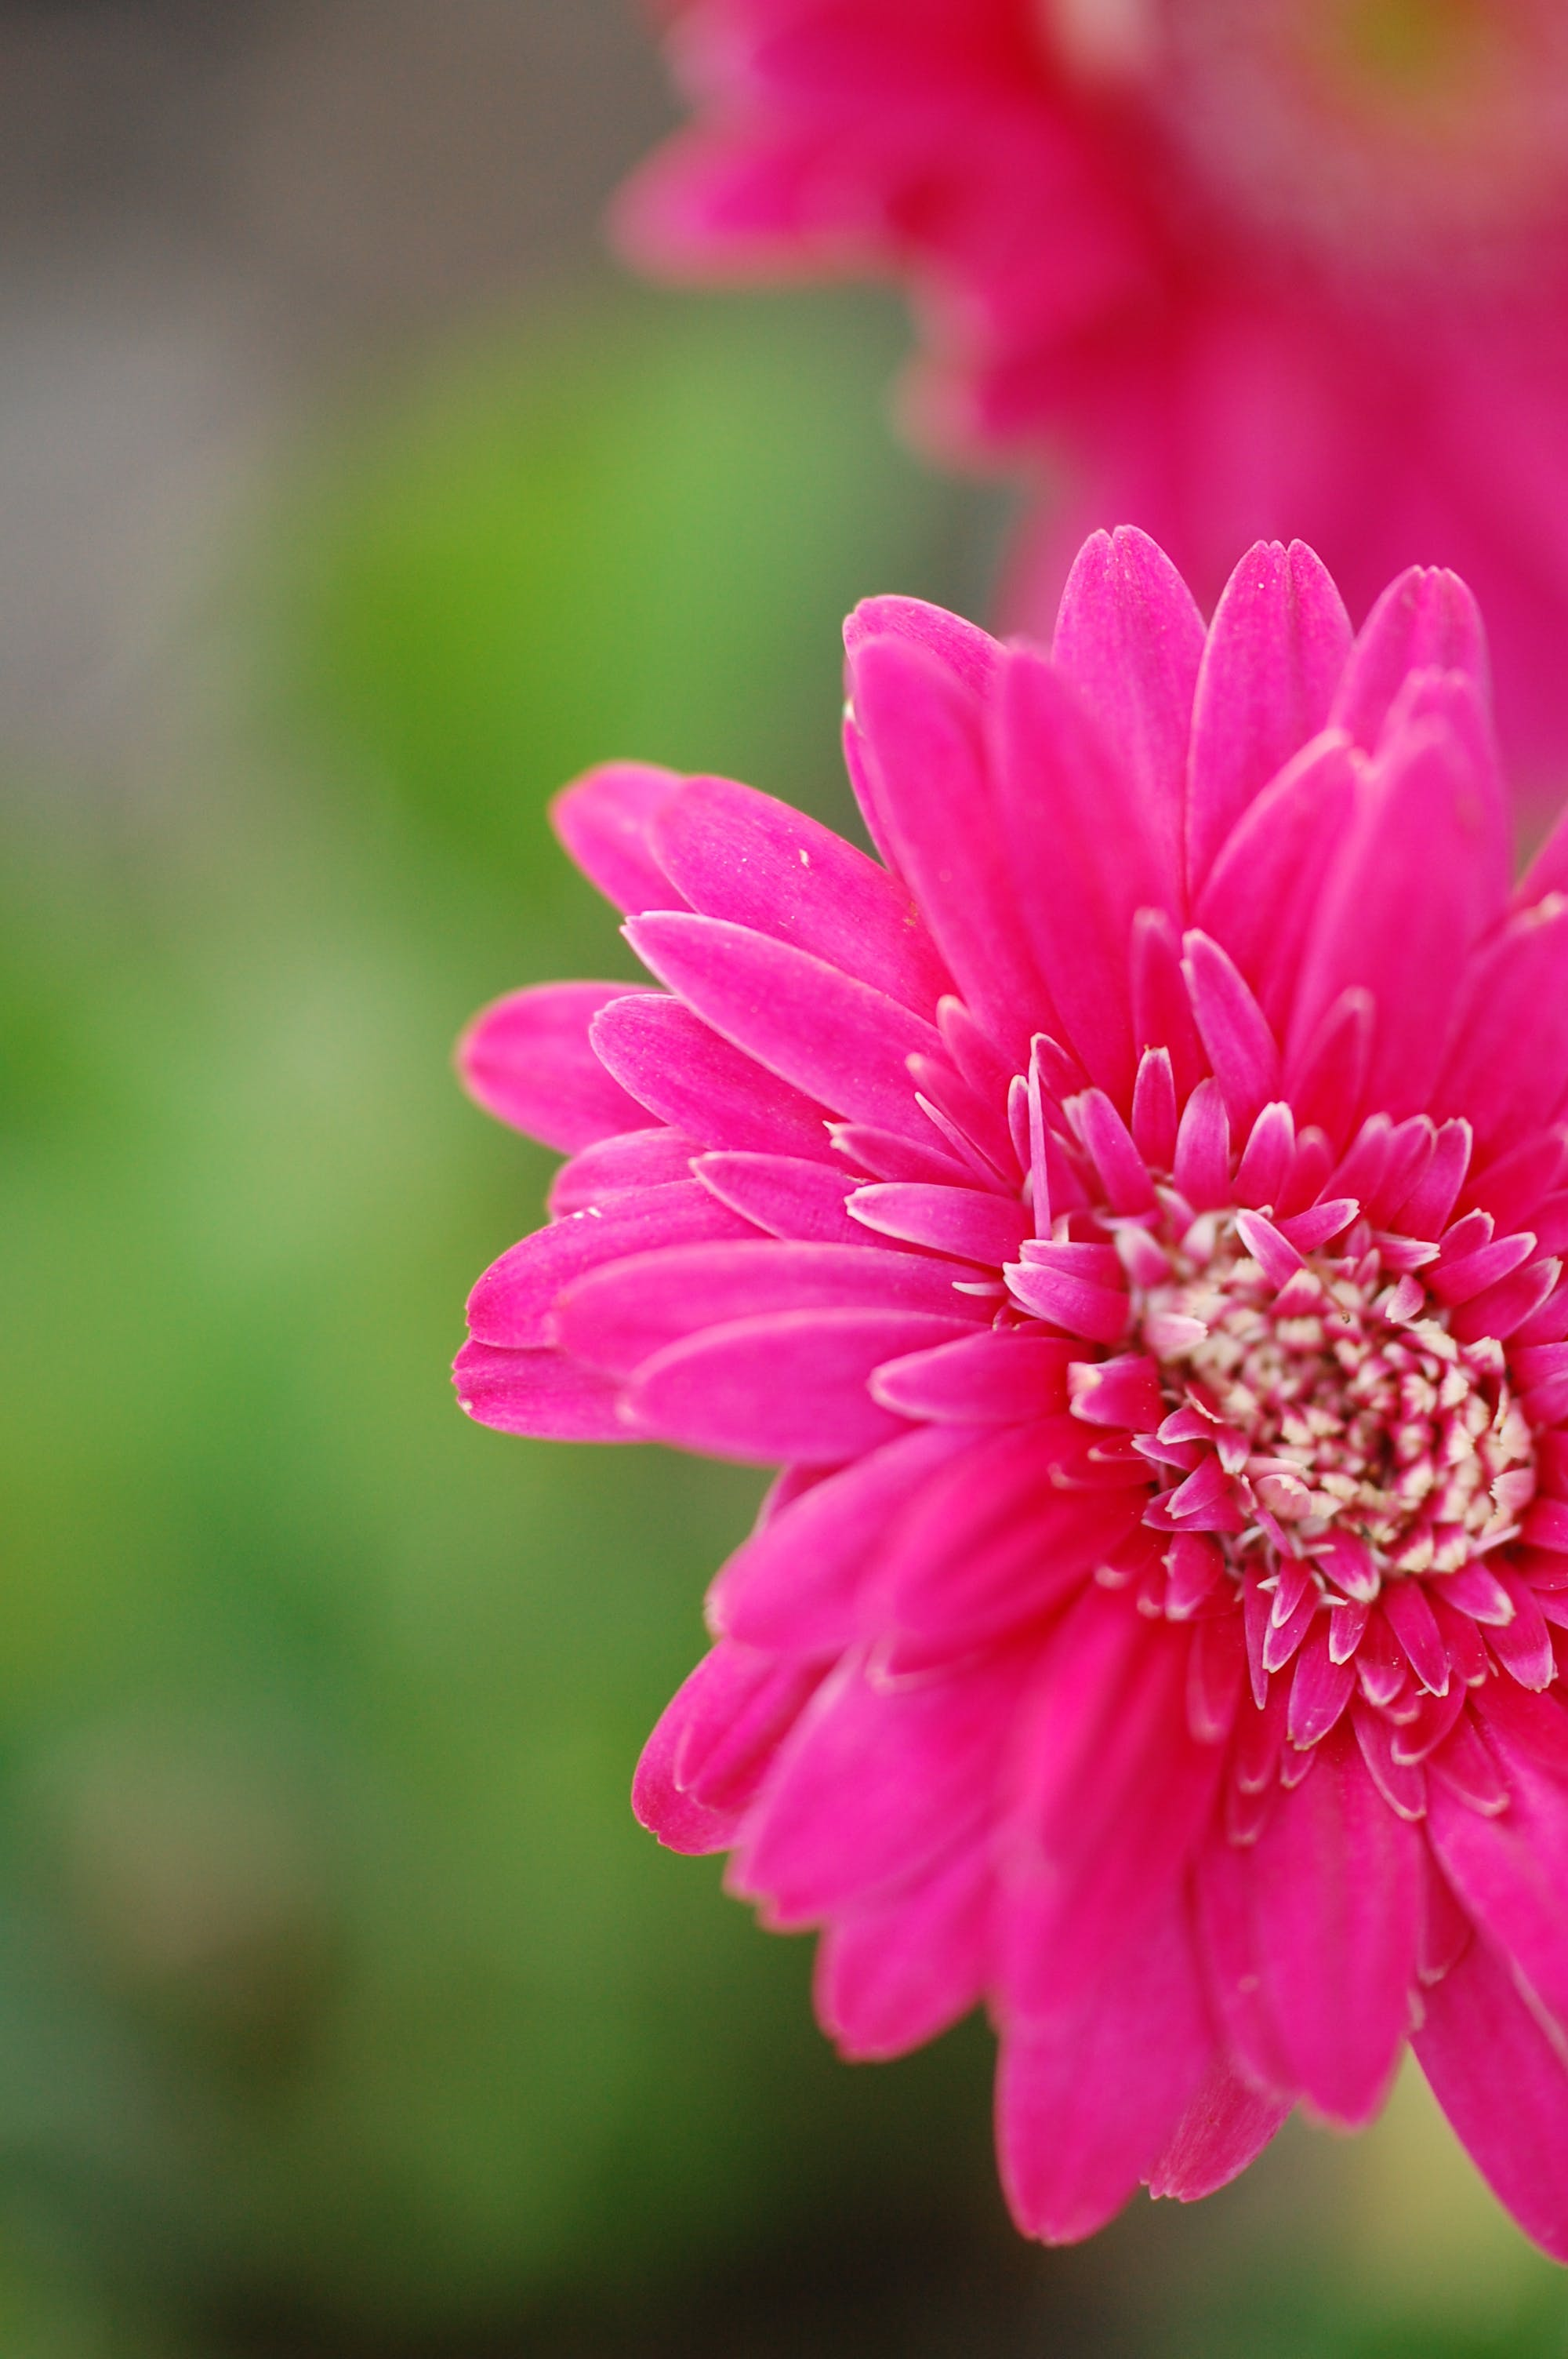 Free stock photo of blur, close up, flower, flowers